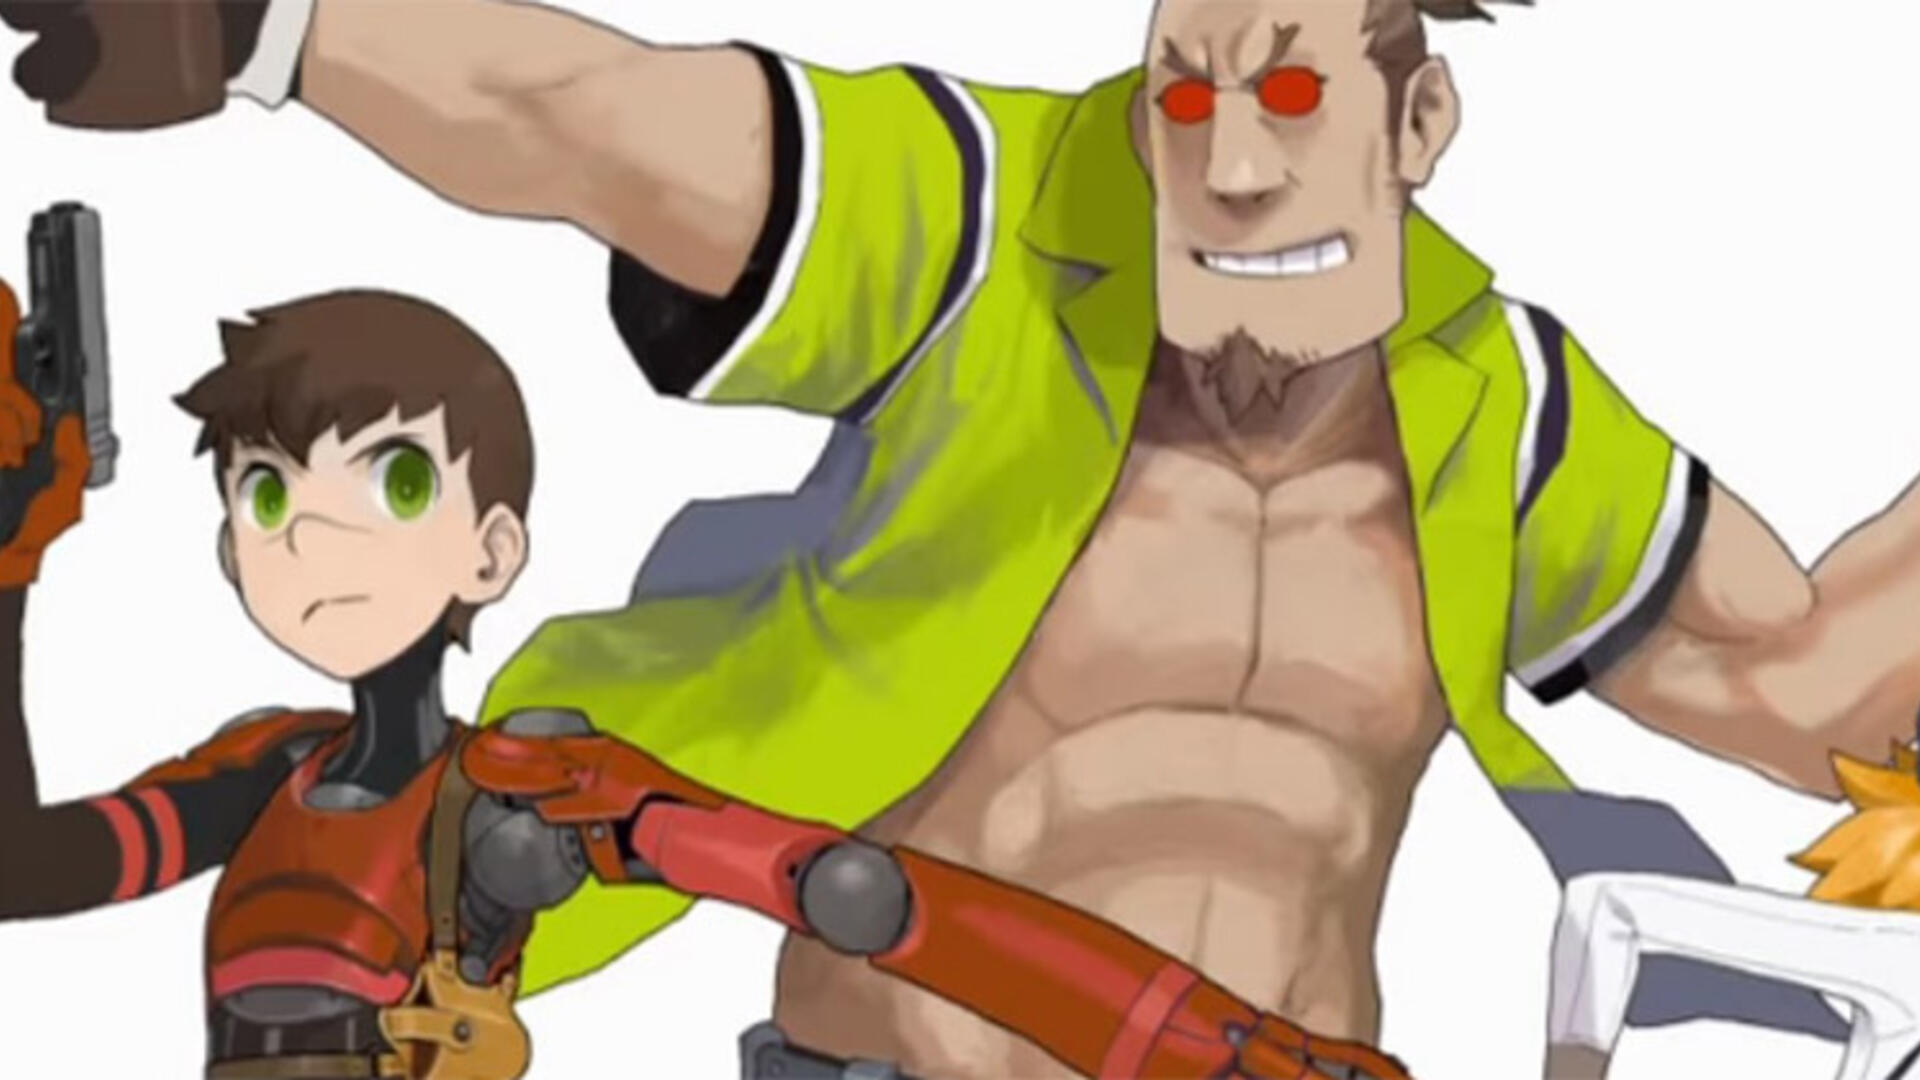 Keiji Inafune Continues the Mega Man Legends Legacy with Red Ash